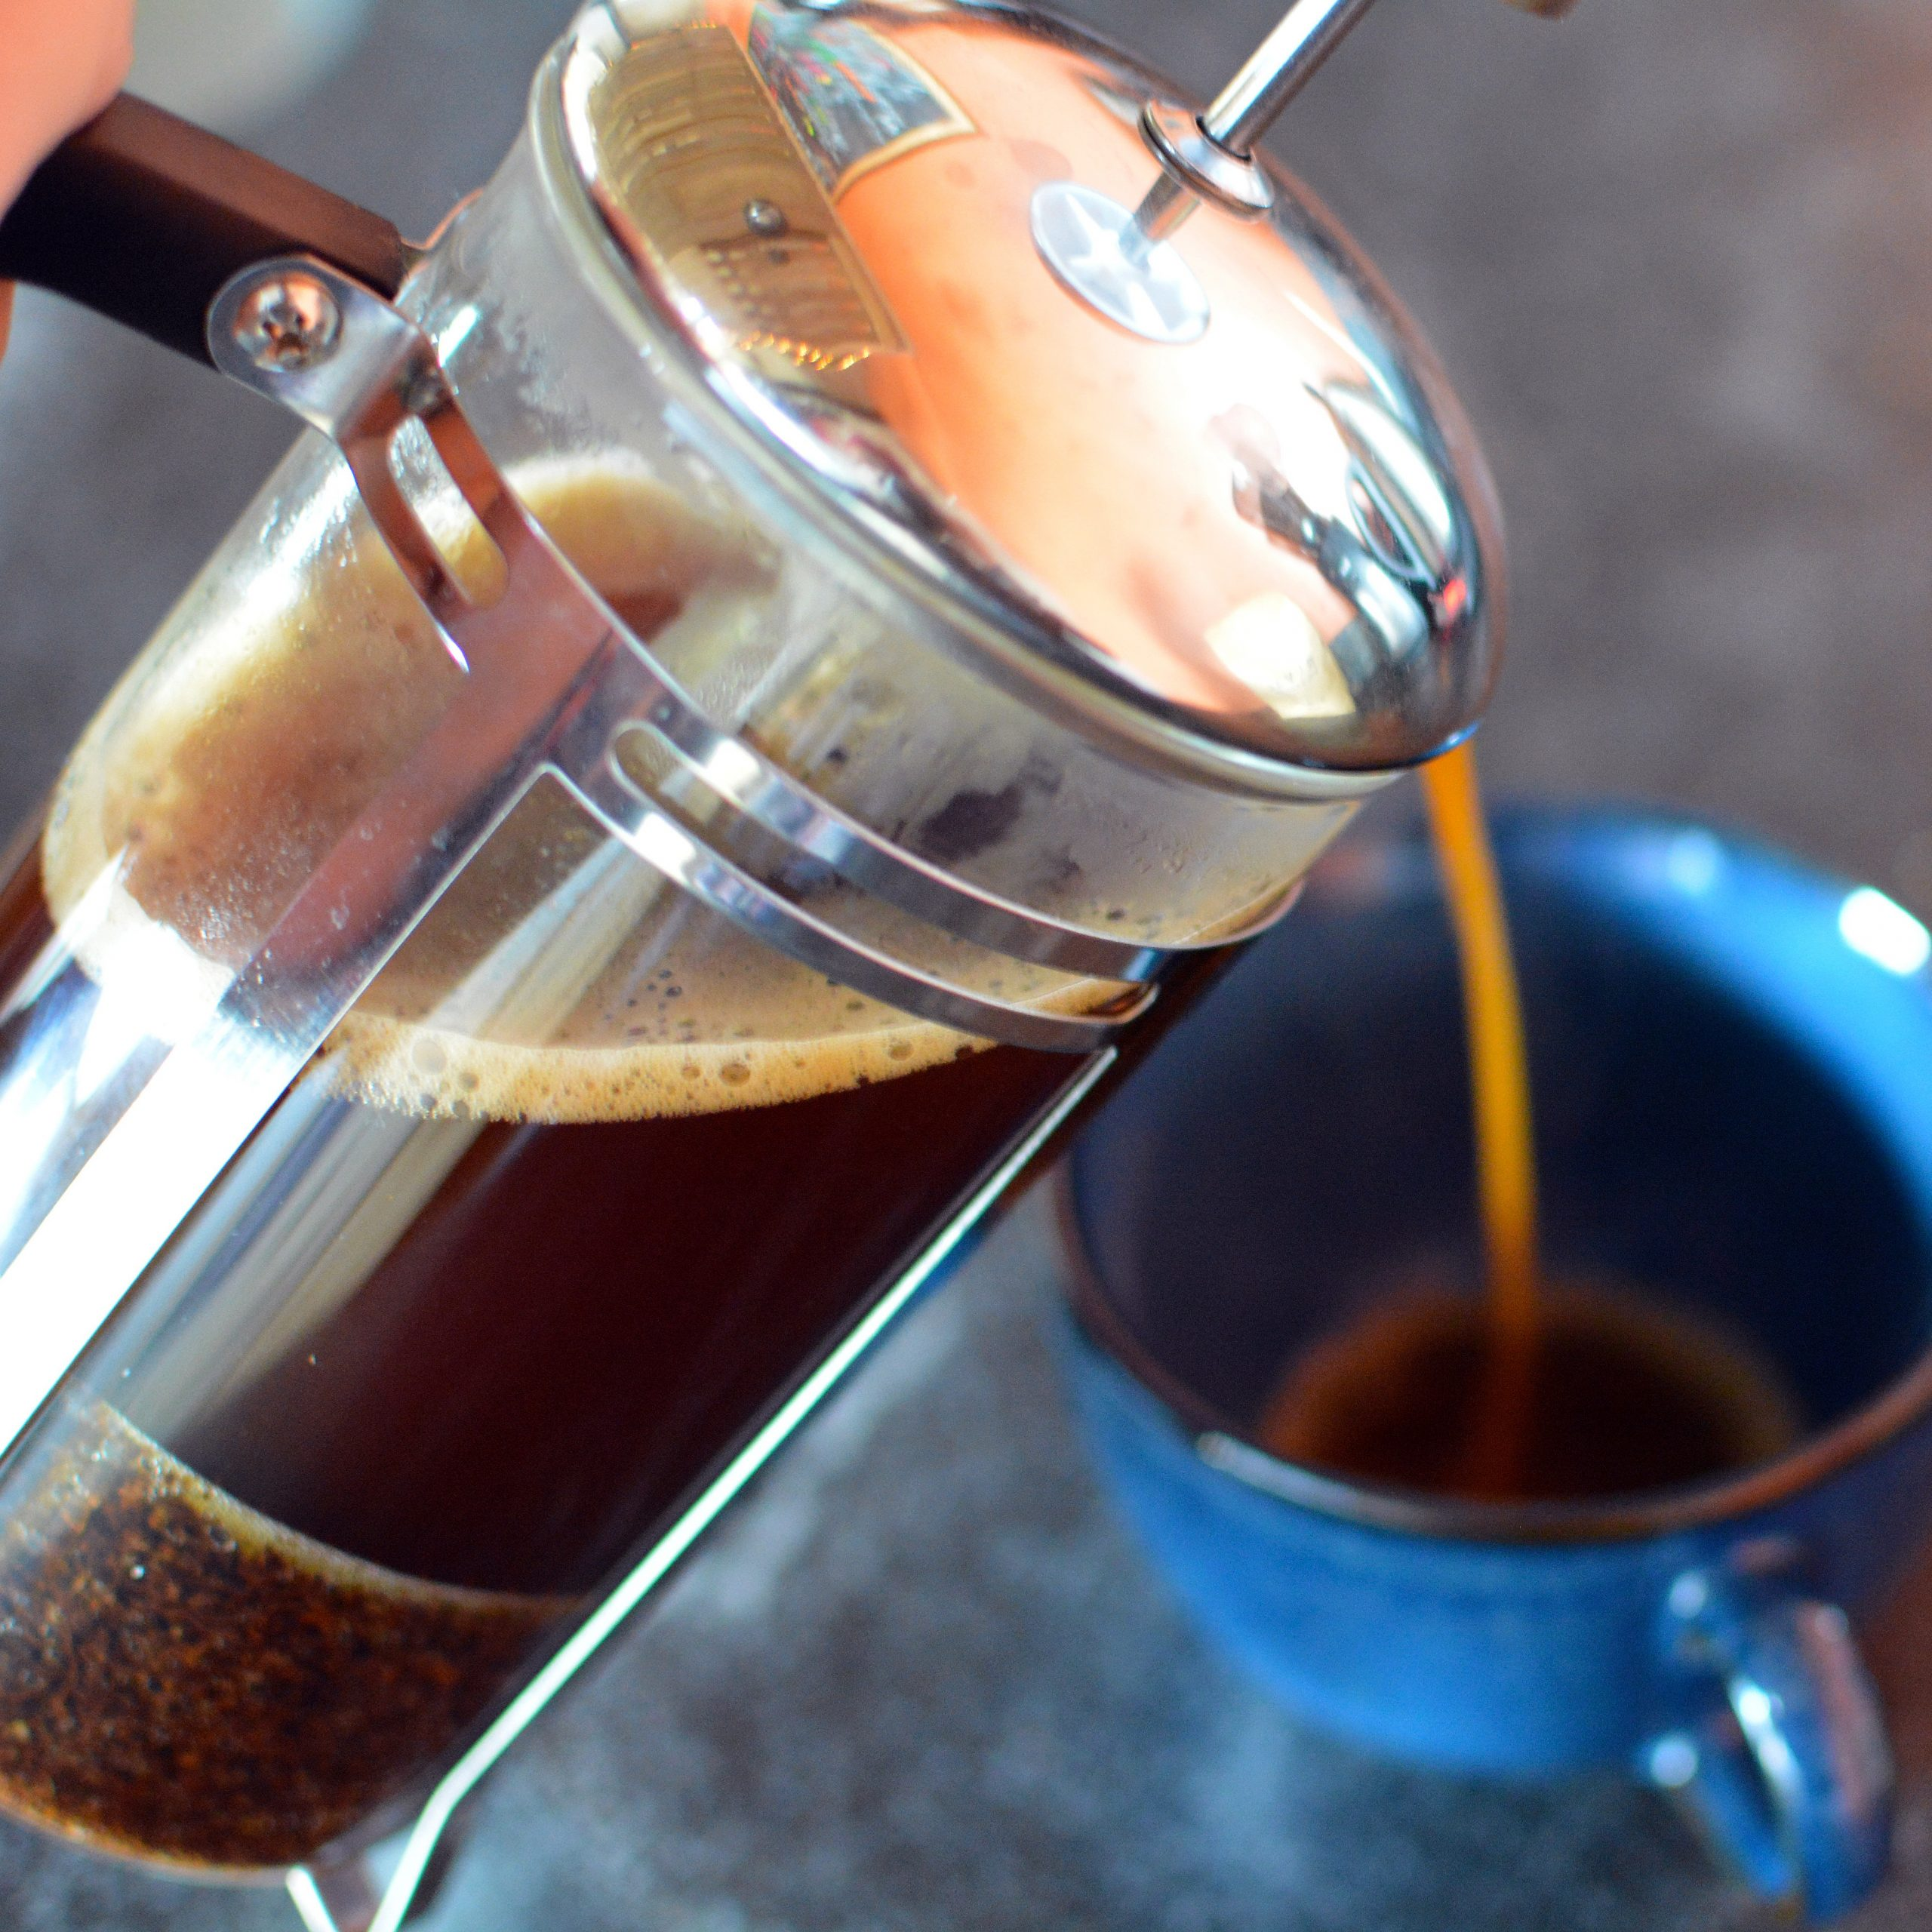 Coffee pours from a french press into a blue mug